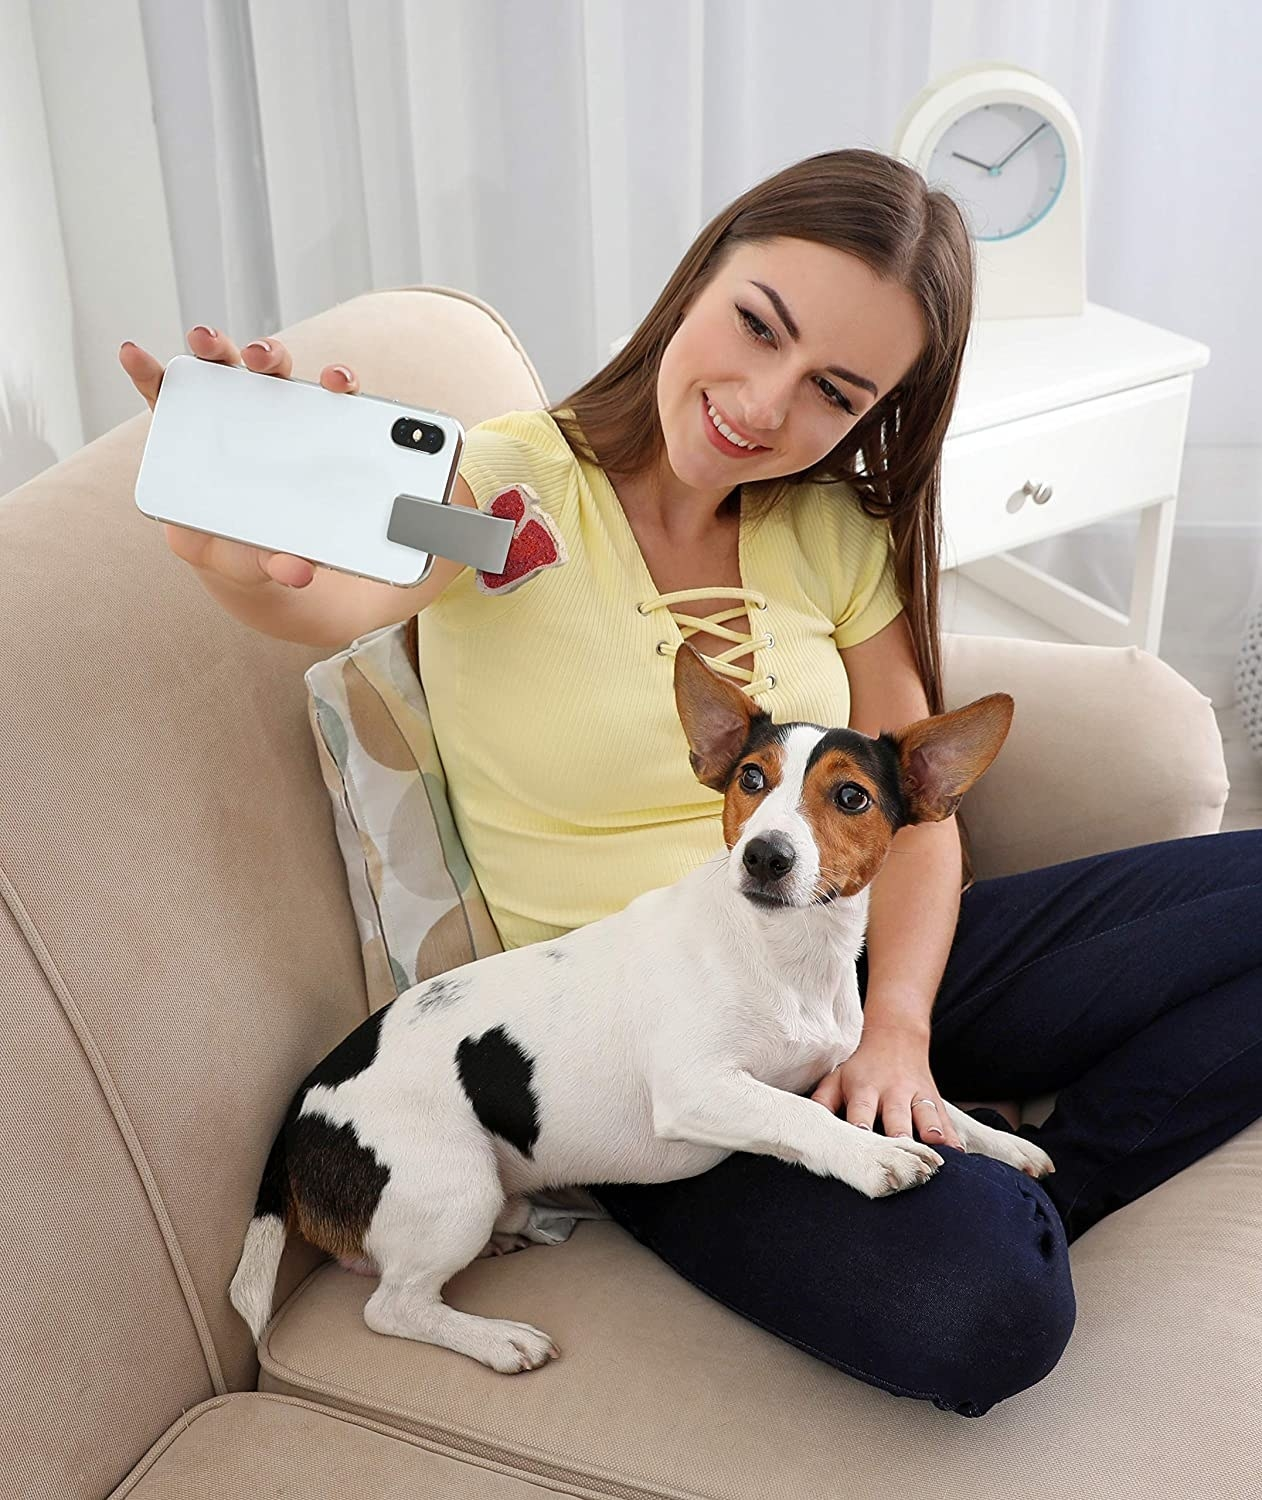 A person holds up their phone with the pet selfie tool while their puppy looks up at the camera